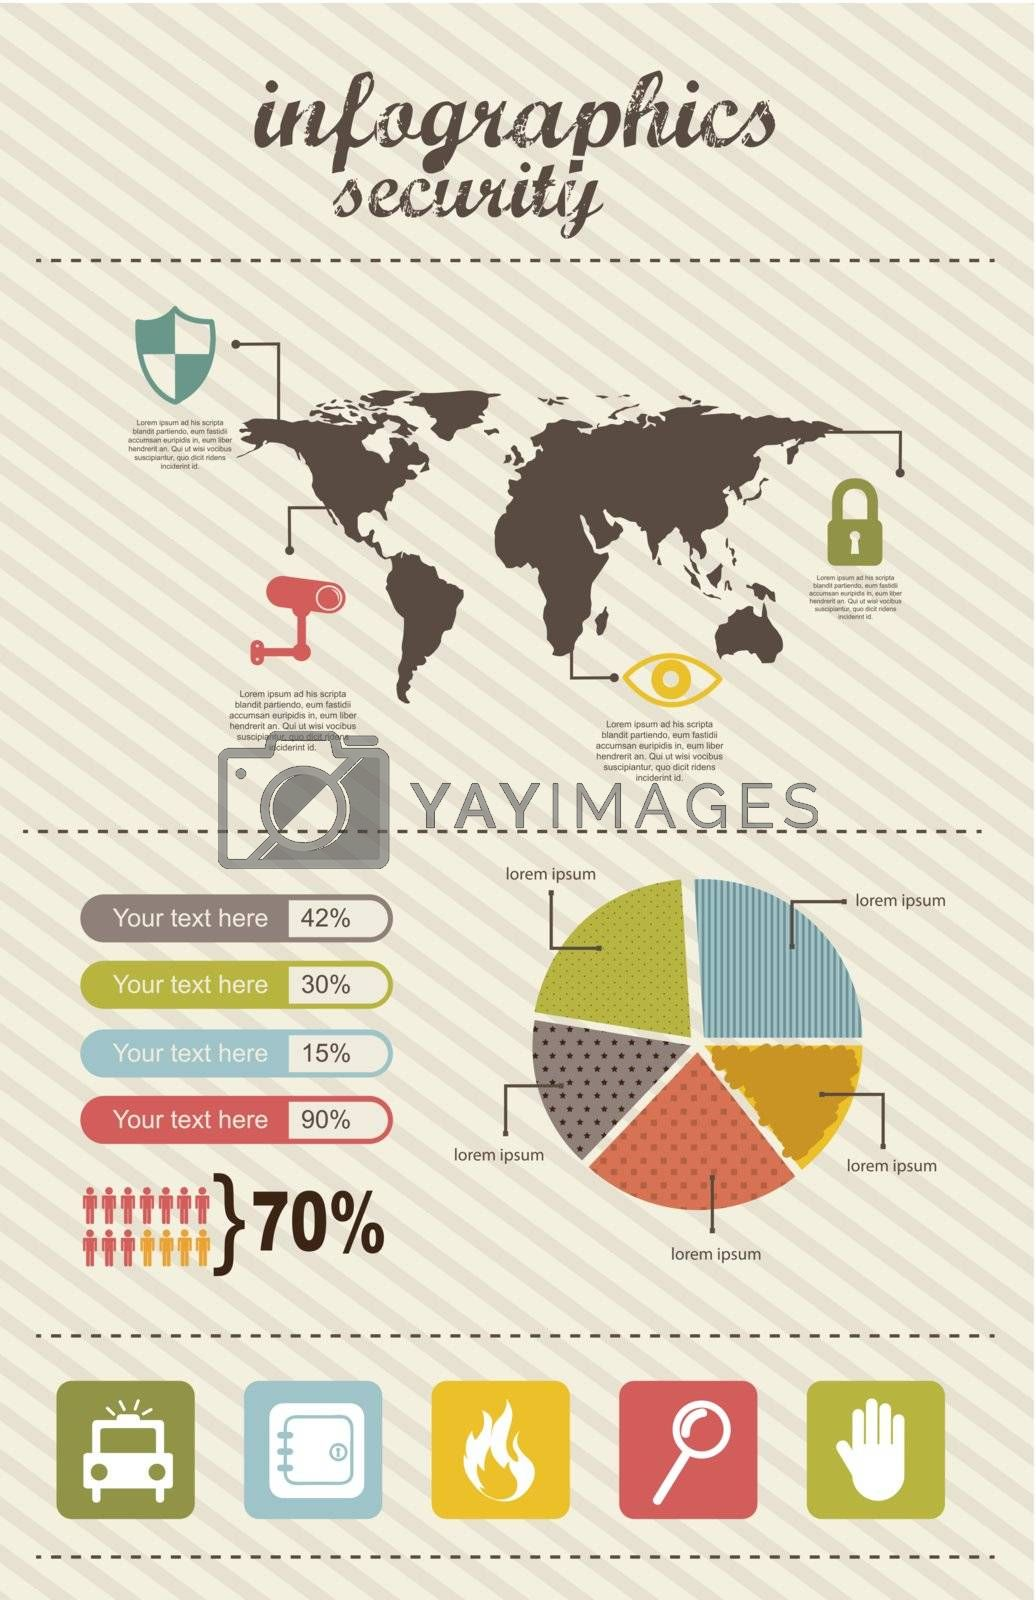 infographics of security, vintage style. vector illustration